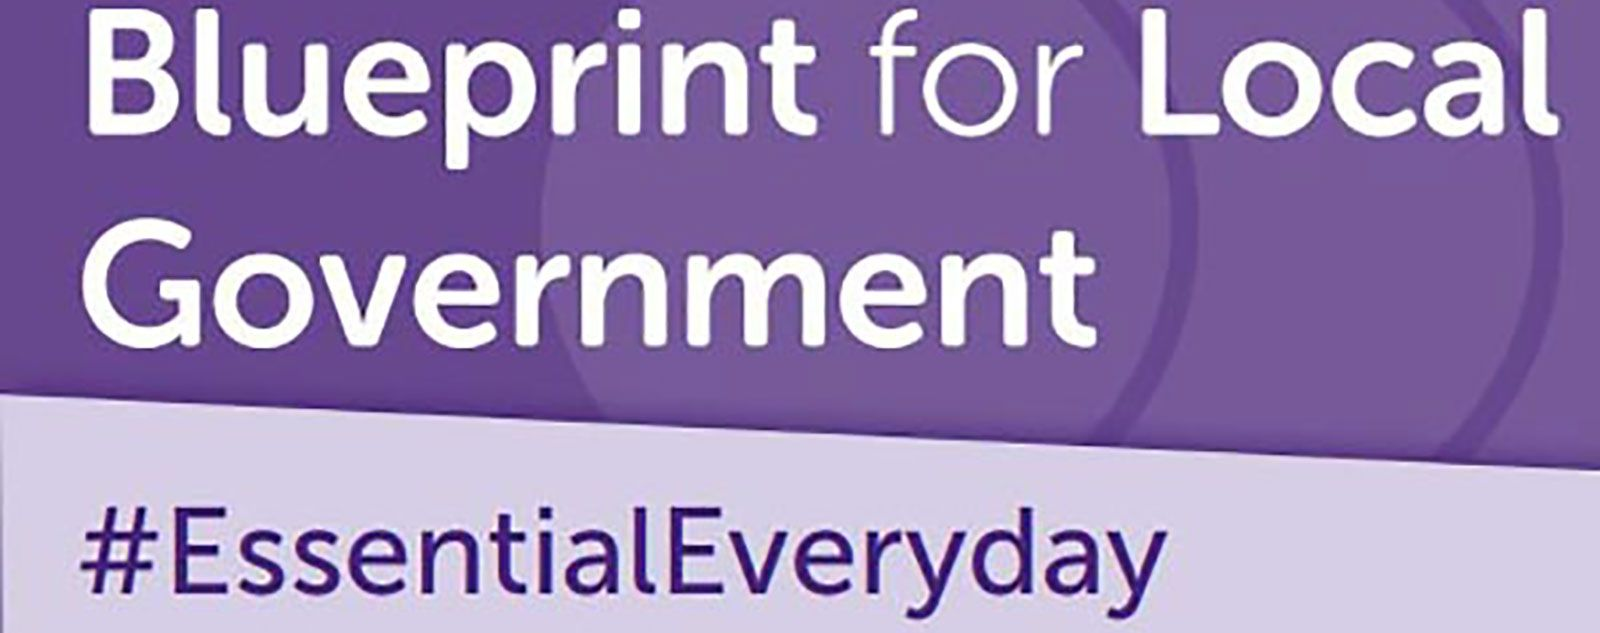 COSLA Blueprint for Local Government banner image